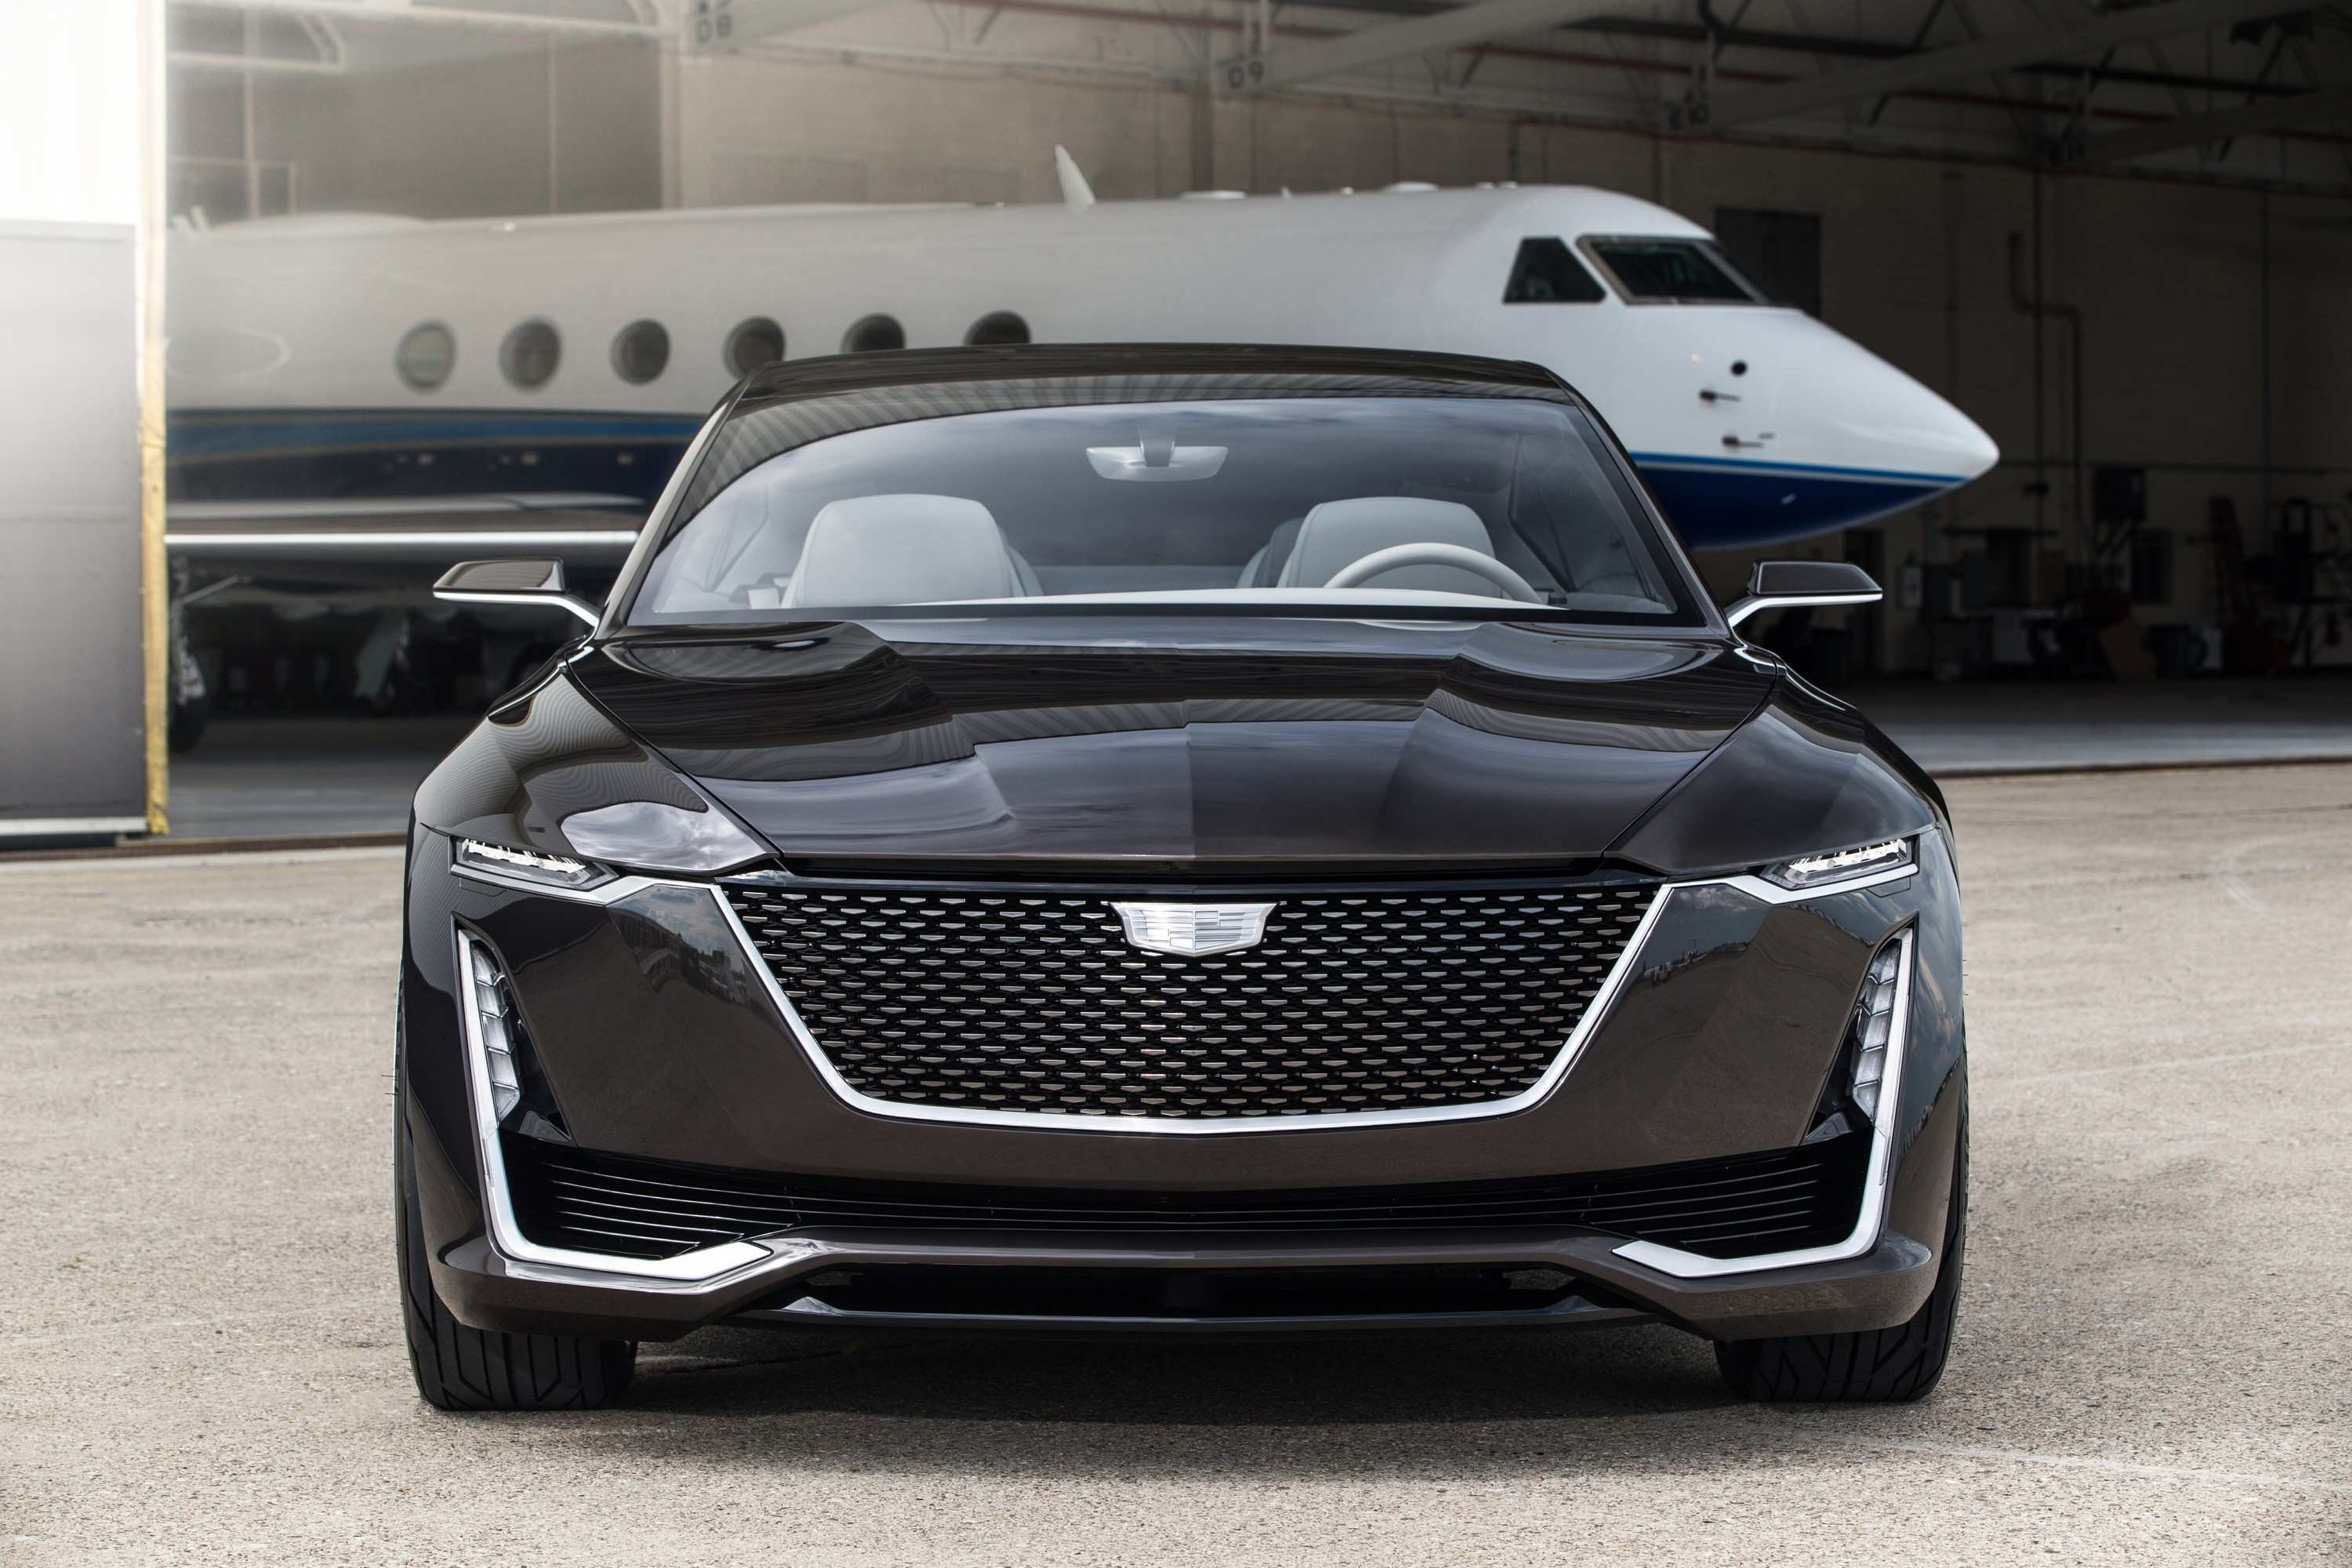 96 Best Review New Cadillac Models For 2020 Style by New Cadillac Models For 2020